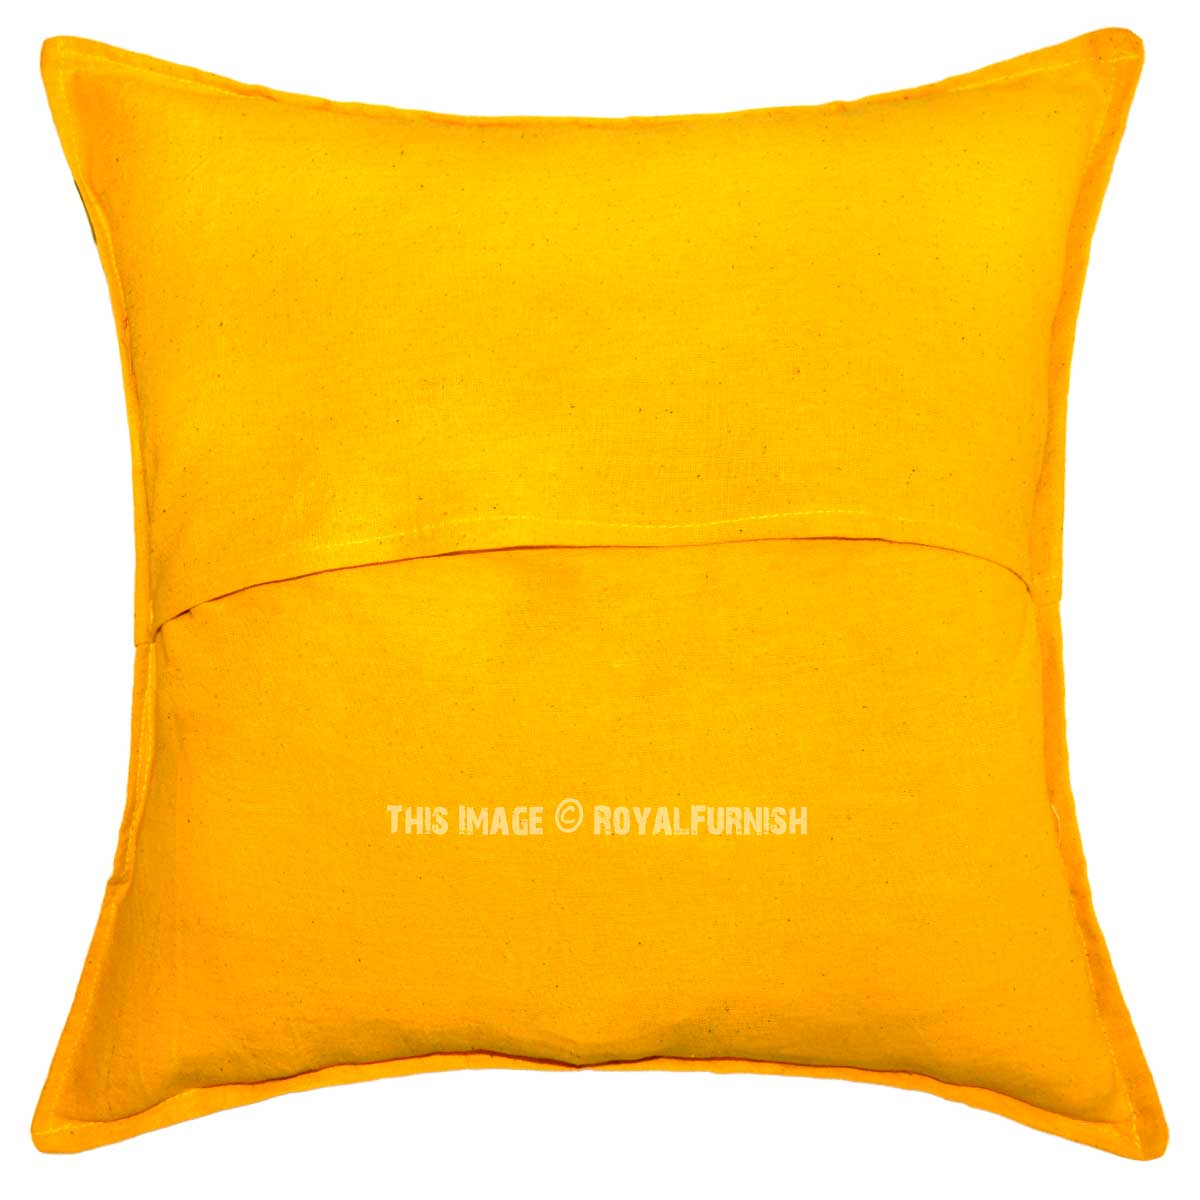 Throw Me A Pillow Coupon Code : 16X16 Unique Yellow Handmade Mirror Embroidered One-Of-A-Kind Pillow Case - RoyalFurnish.com